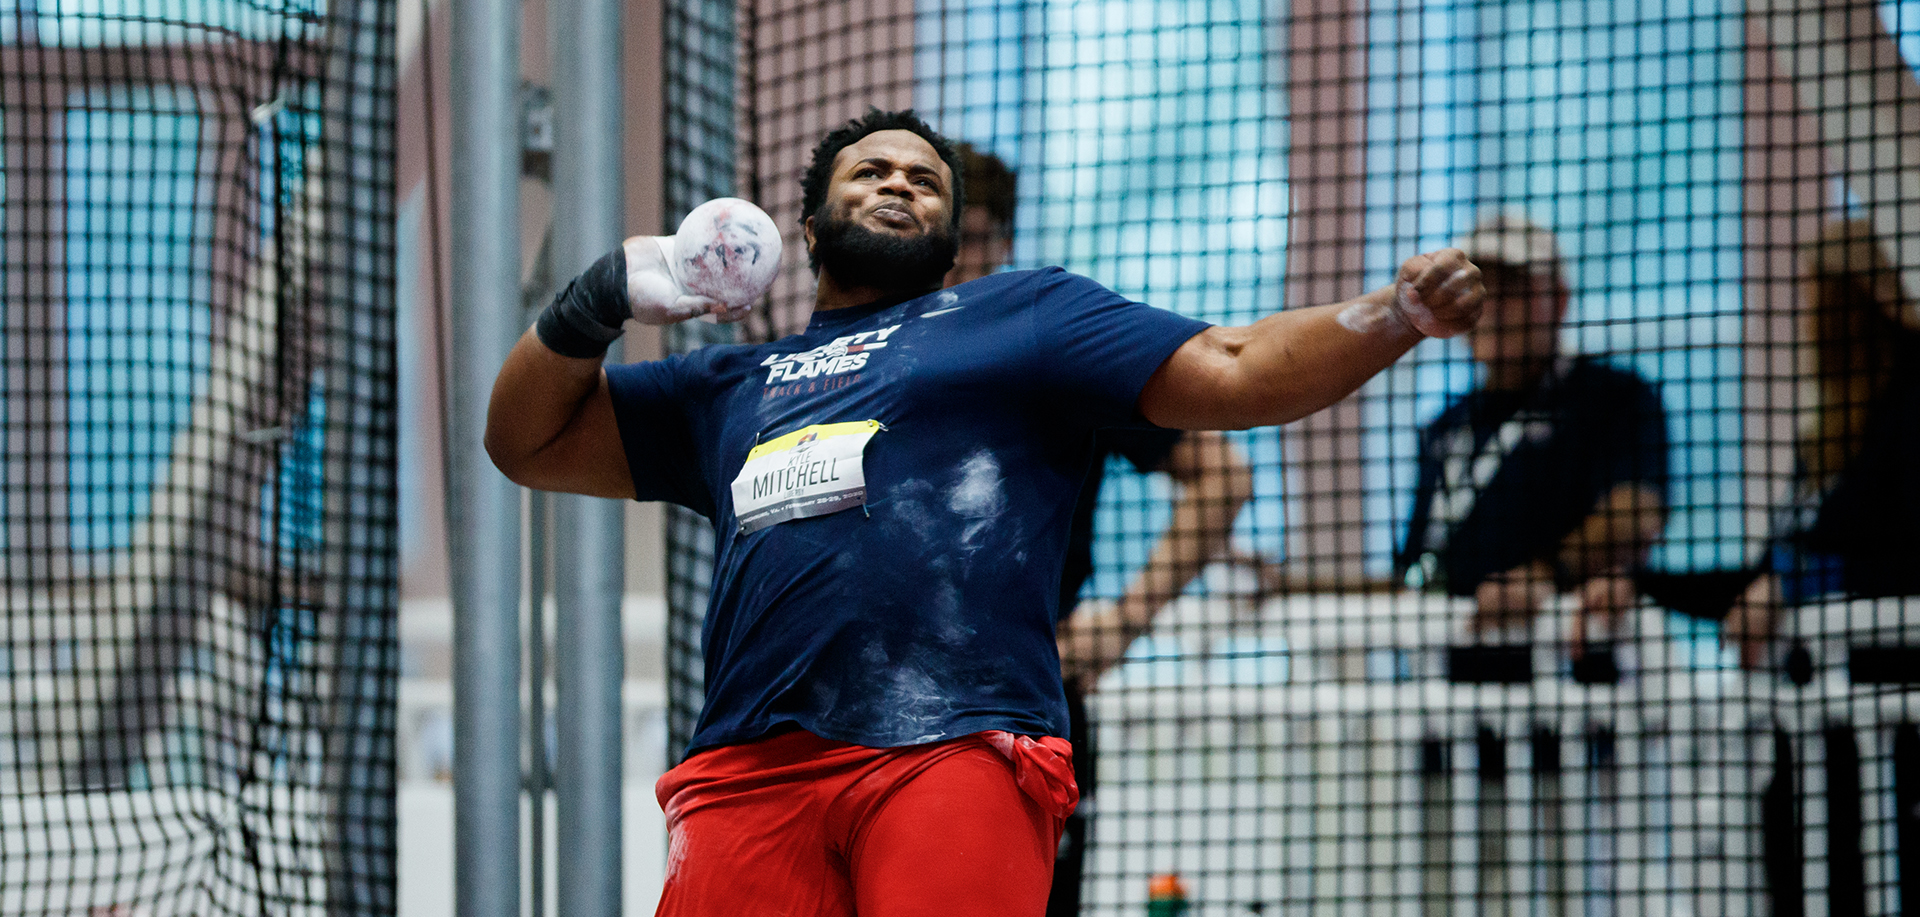 Kyle Mitchell won the men's shot put competition at Saturday's Virginia Tech Challenge.